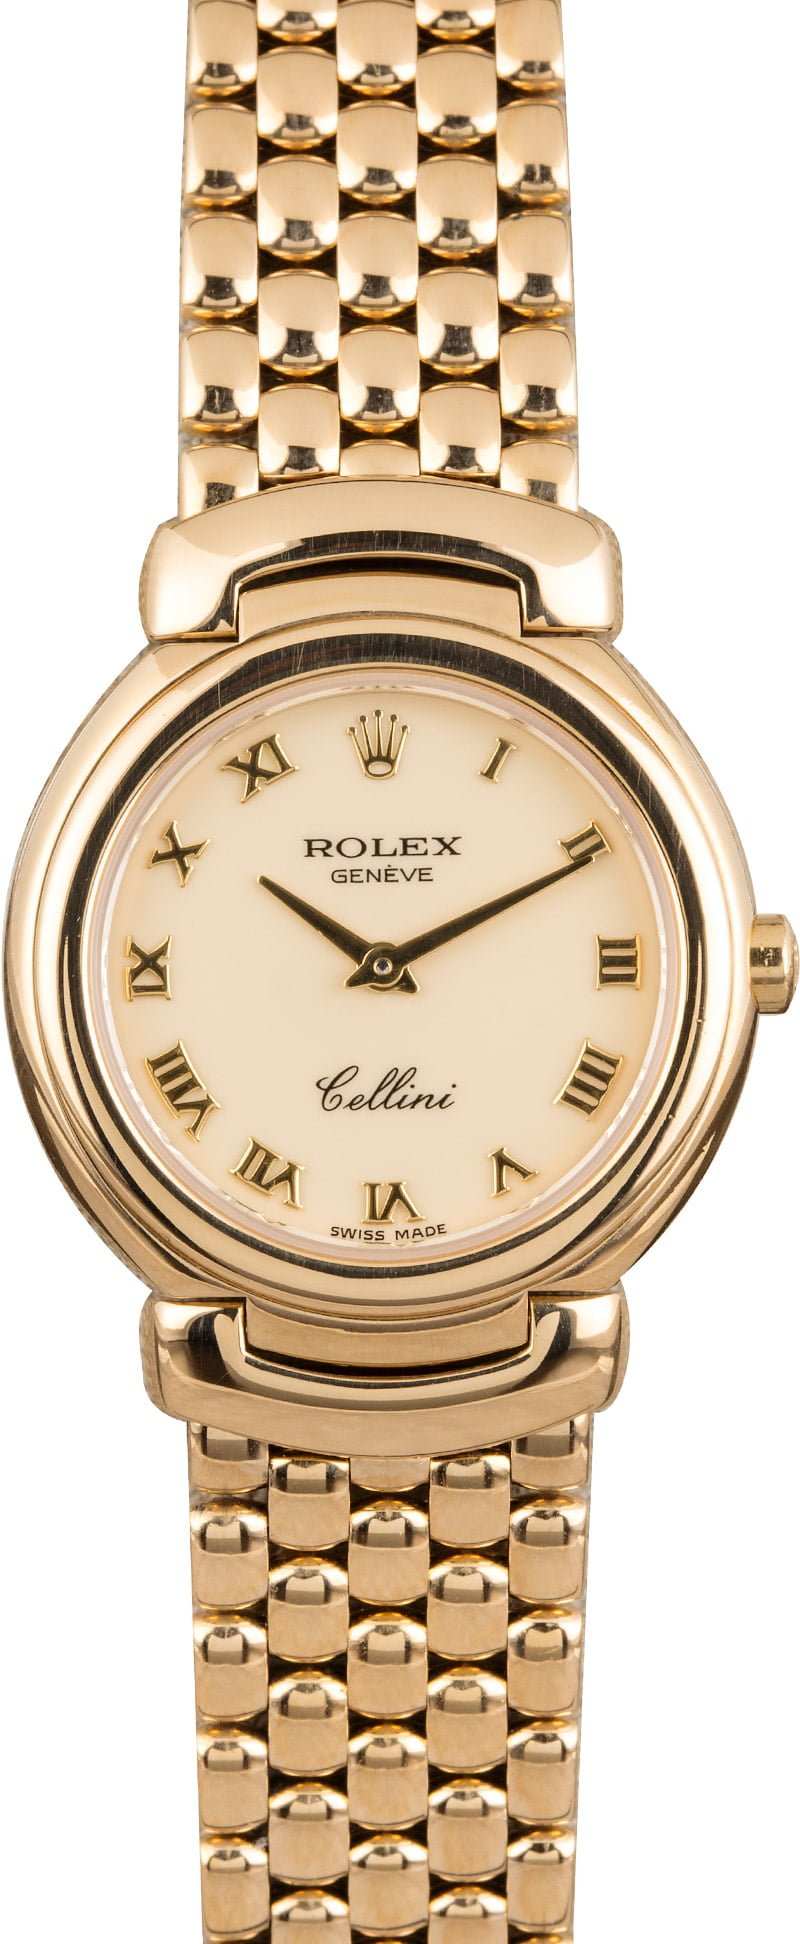 062411a8afa Buy Used Rolex Cellini 6621 | Bob's Watches - Sku: 123356